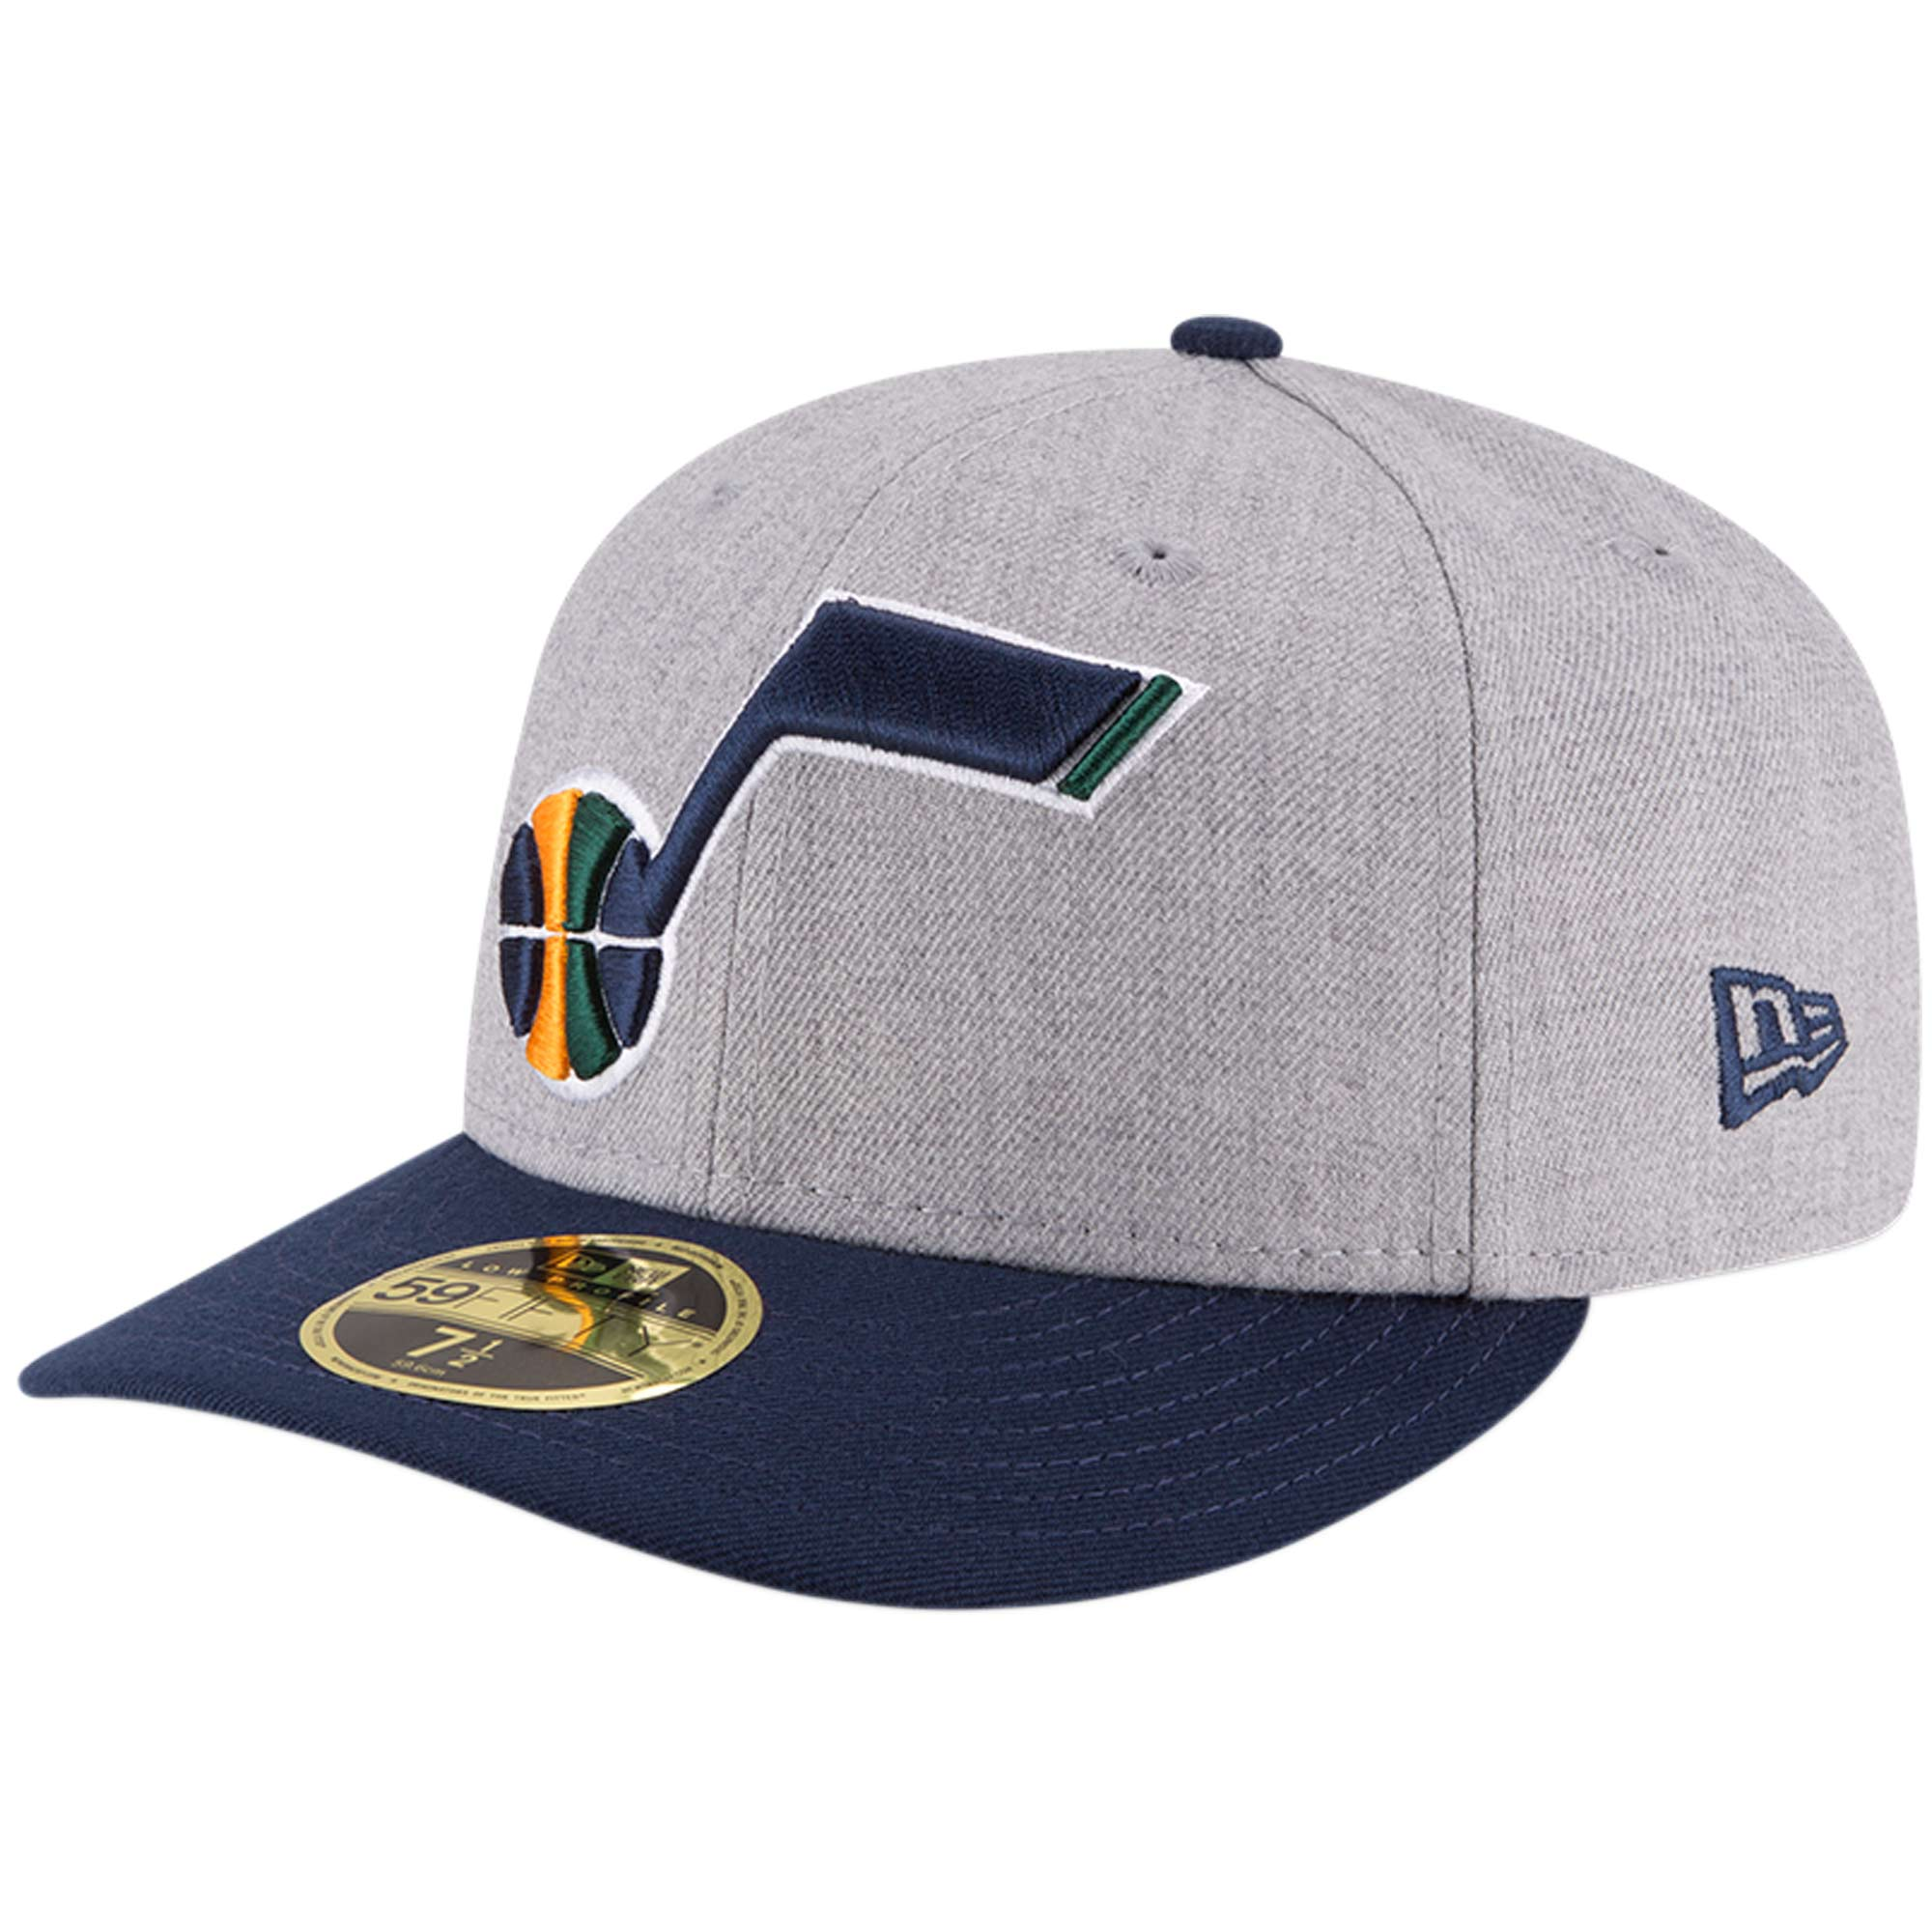 Utah Jazz New Era Two-Tone Low Profile 59FIFTY Fitted Hat - Heathered Gray/Navy